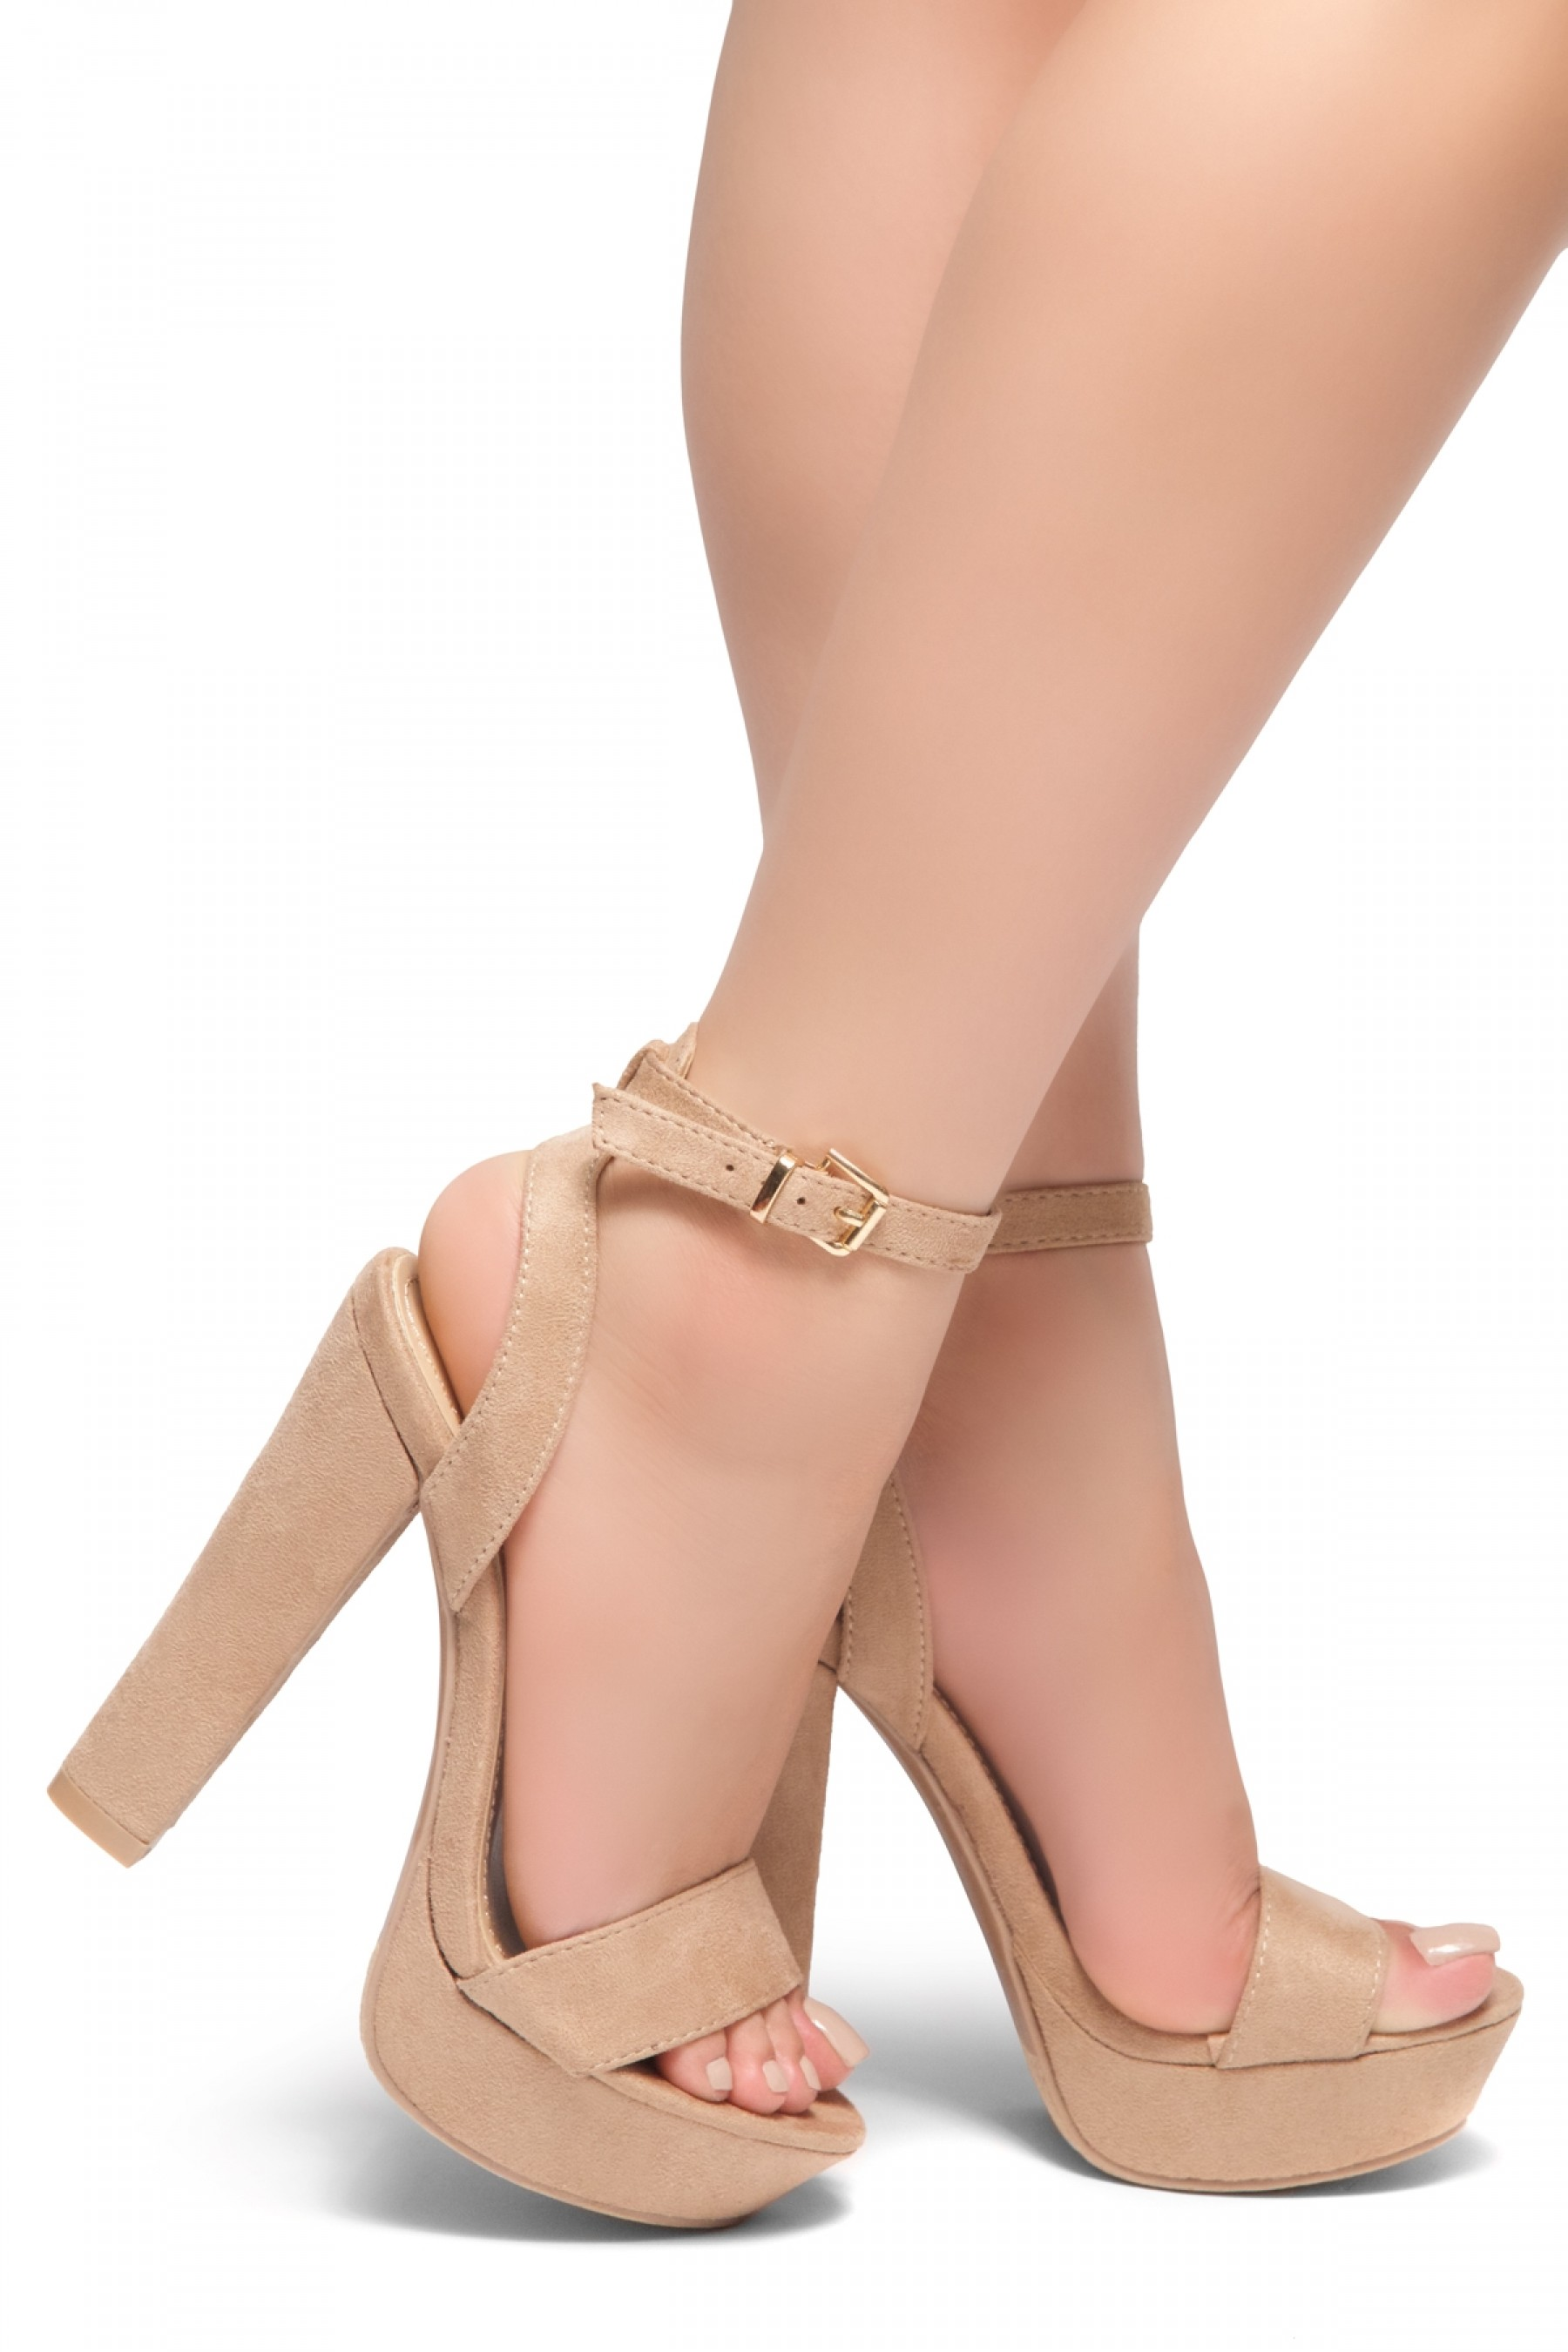 d2c7aa36ddf HerStyle THALIA- Ankle Strap Platform Chunky Heel (Blush)